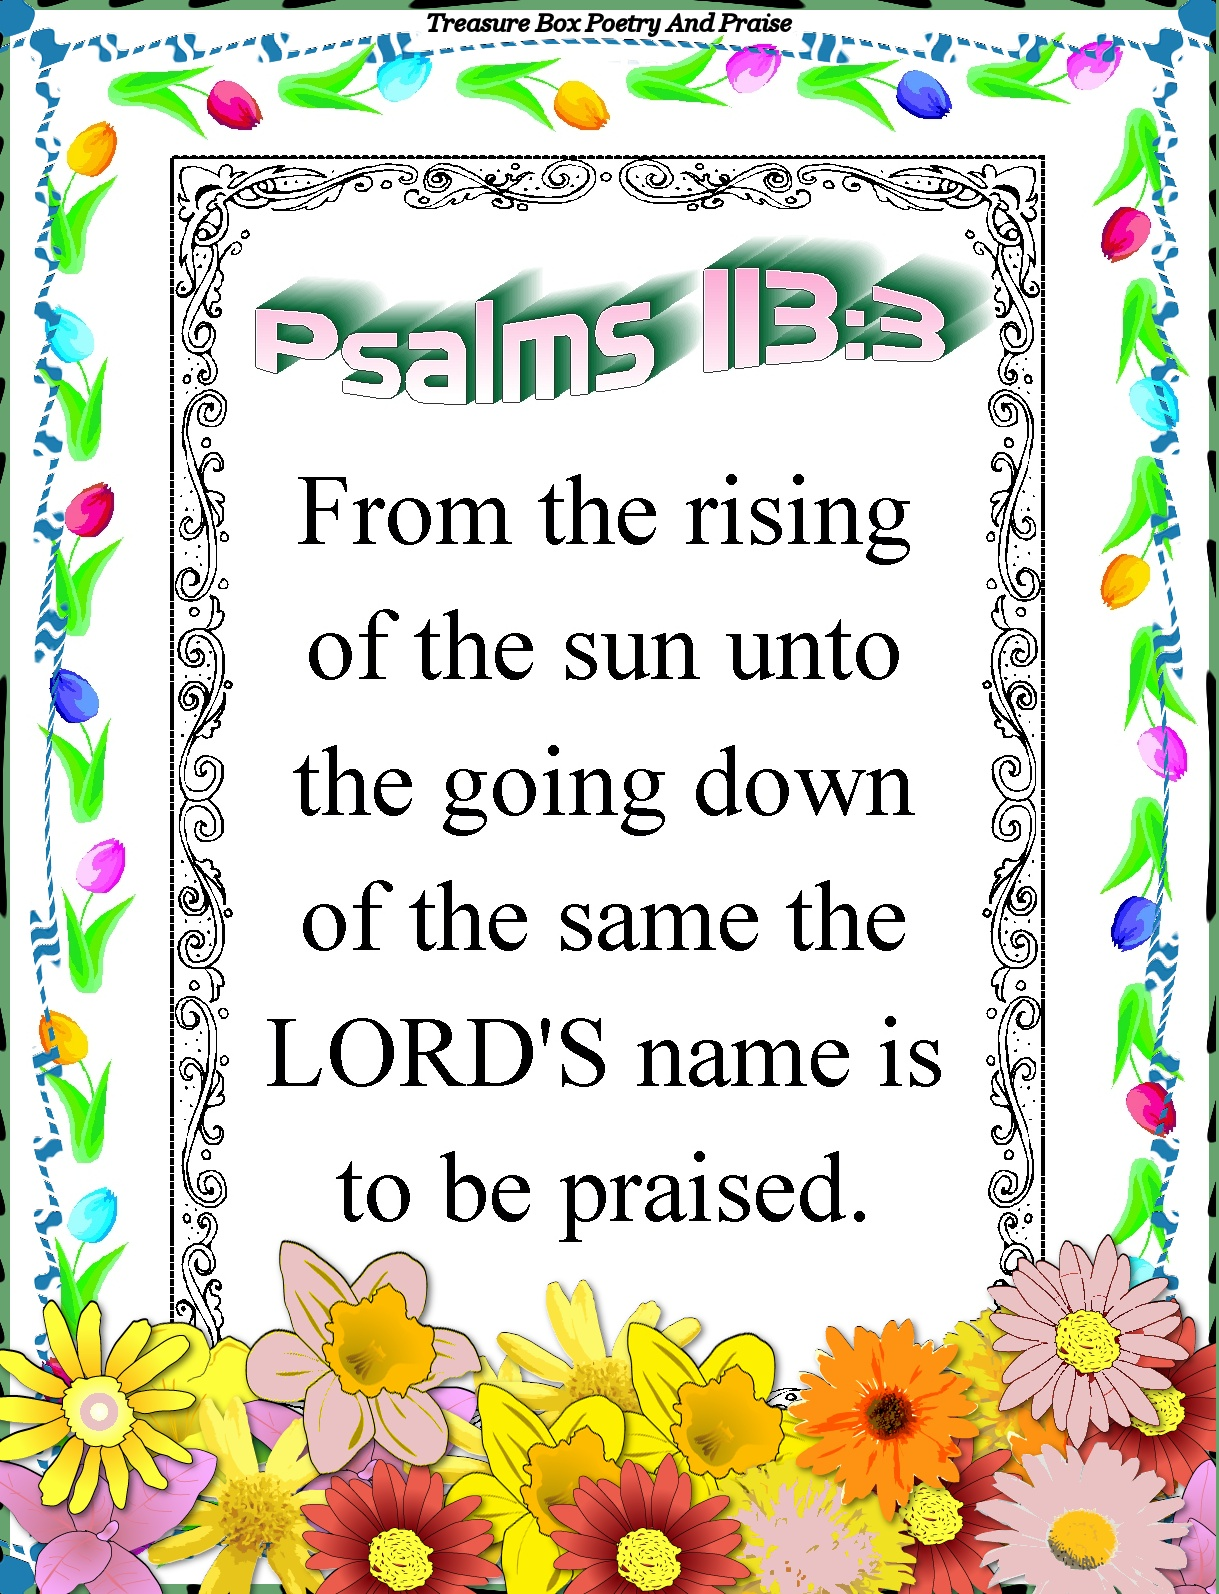 Christian Images In My Treasure Box  Psalms 113 3   Spring Poster